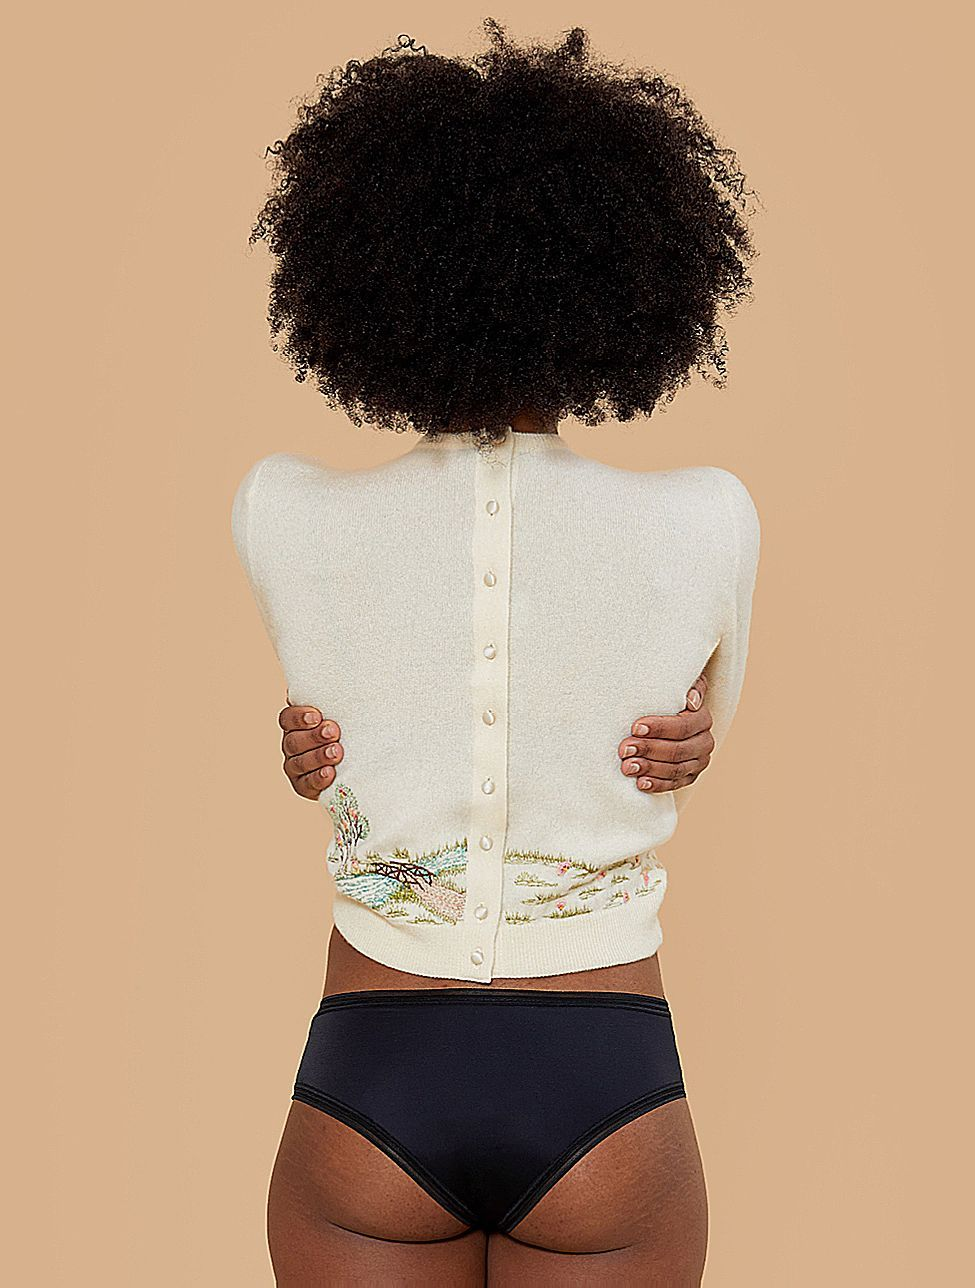 Image of a woman wearing a THINX Cheeky Period Panty